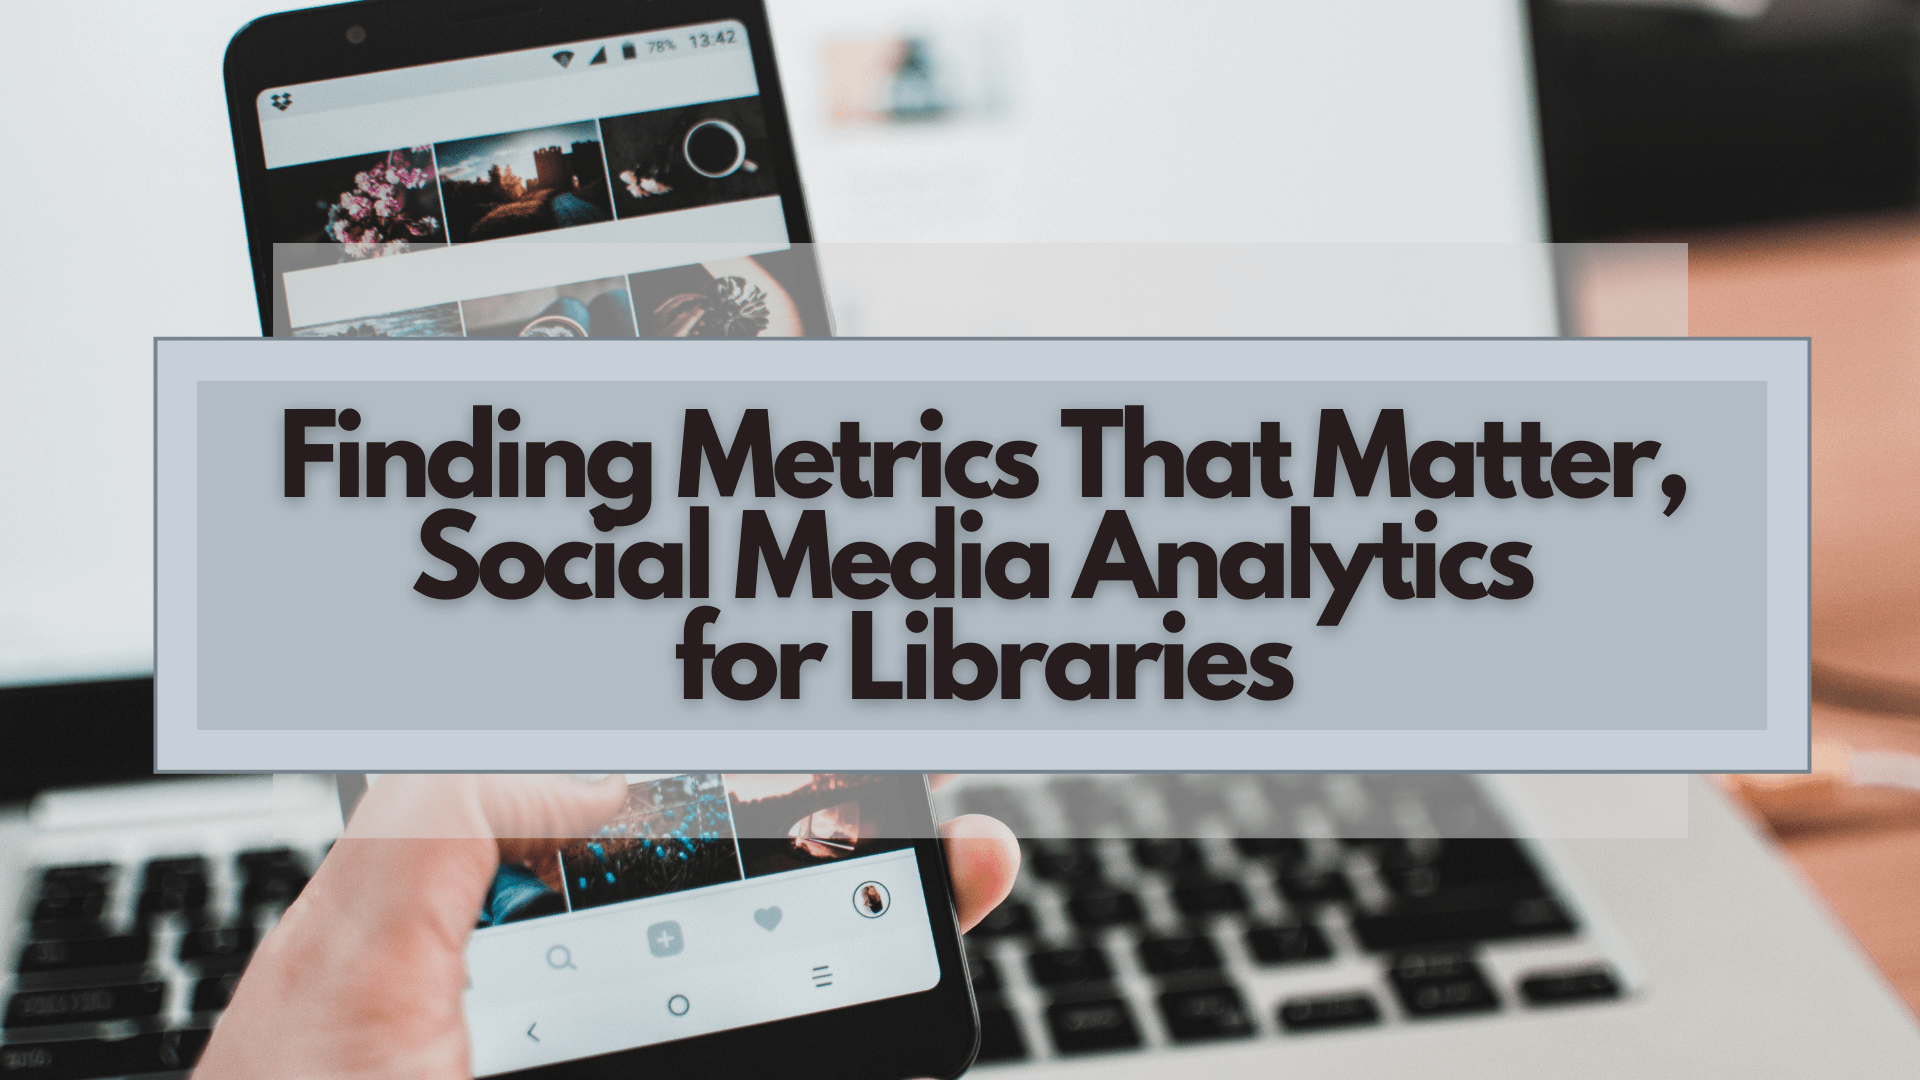 Finding Metrics That Matter, Social Media Analytics for Libraries